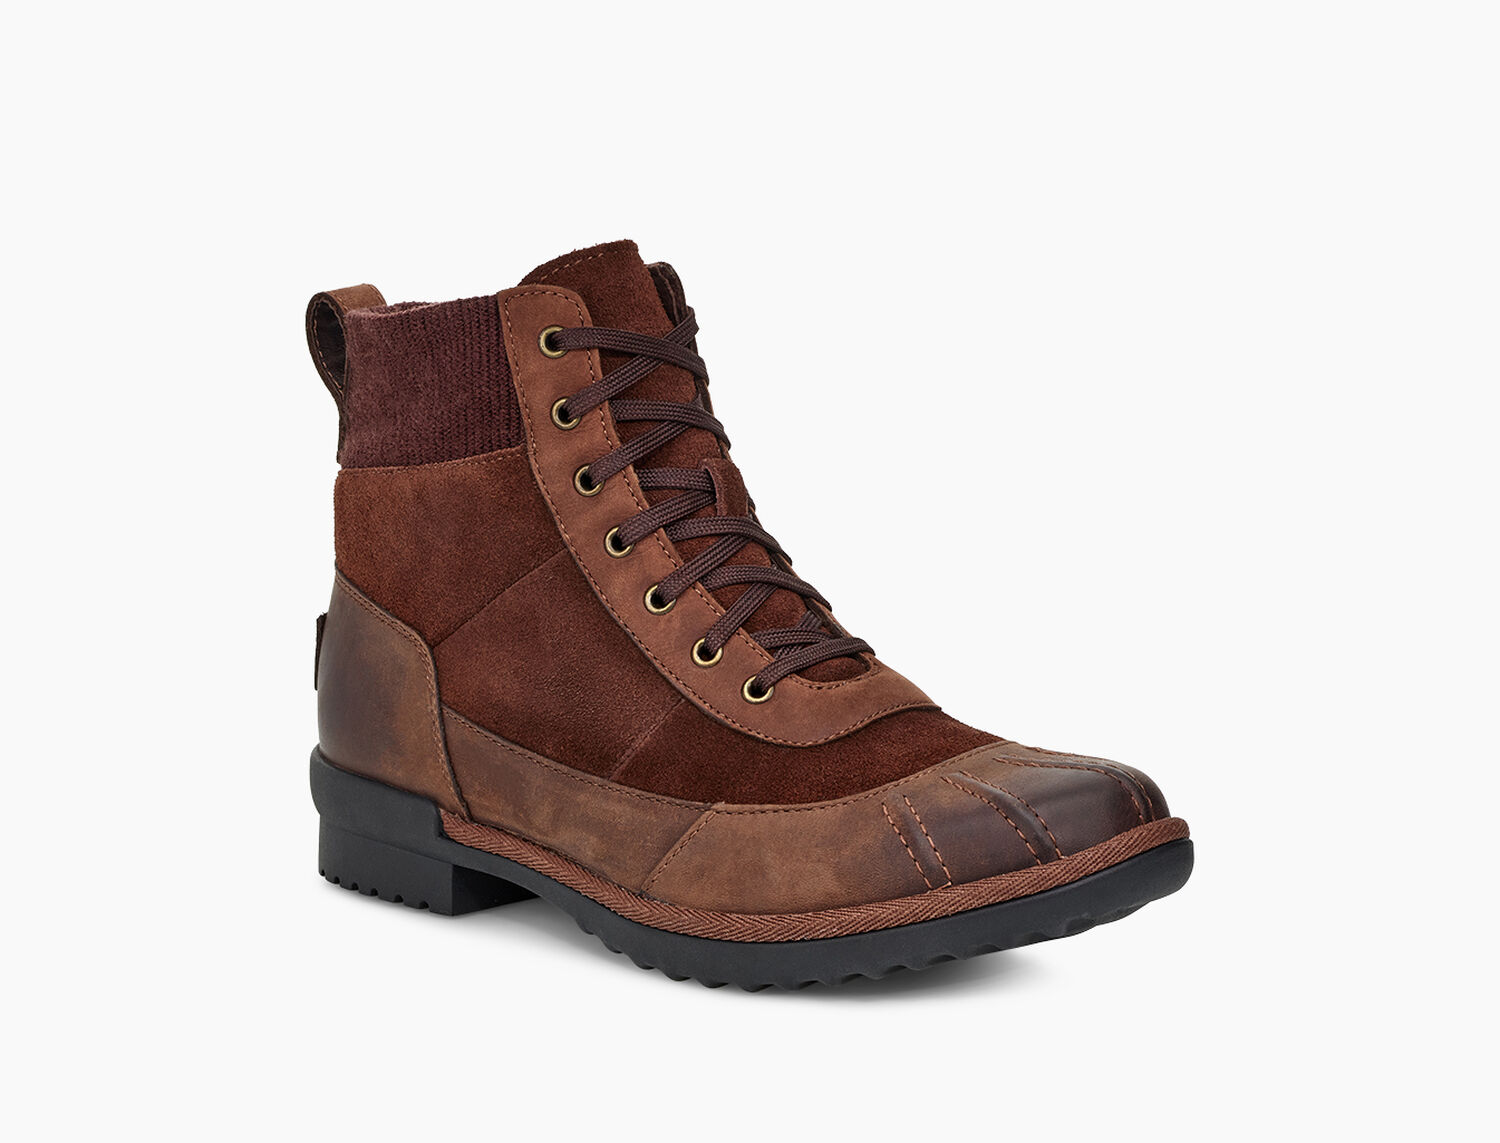 22f5d472ef4 Women's Share this product Cayli Boot